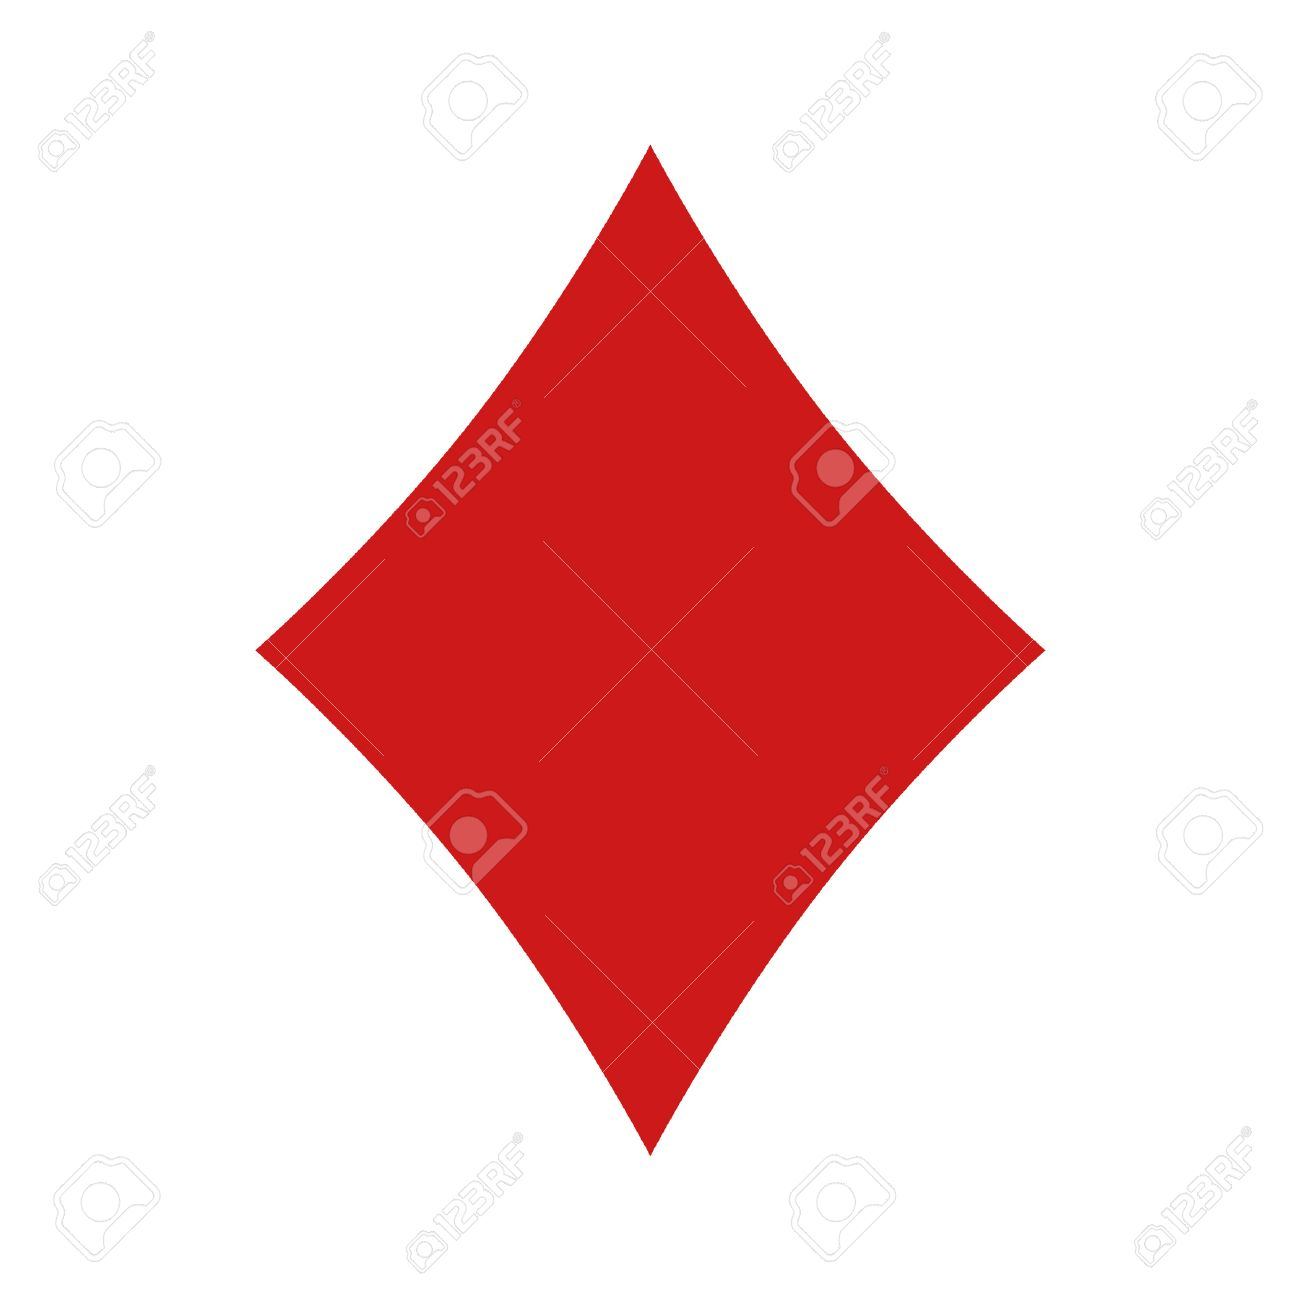 image vector cream red card free diamond royalty suits background